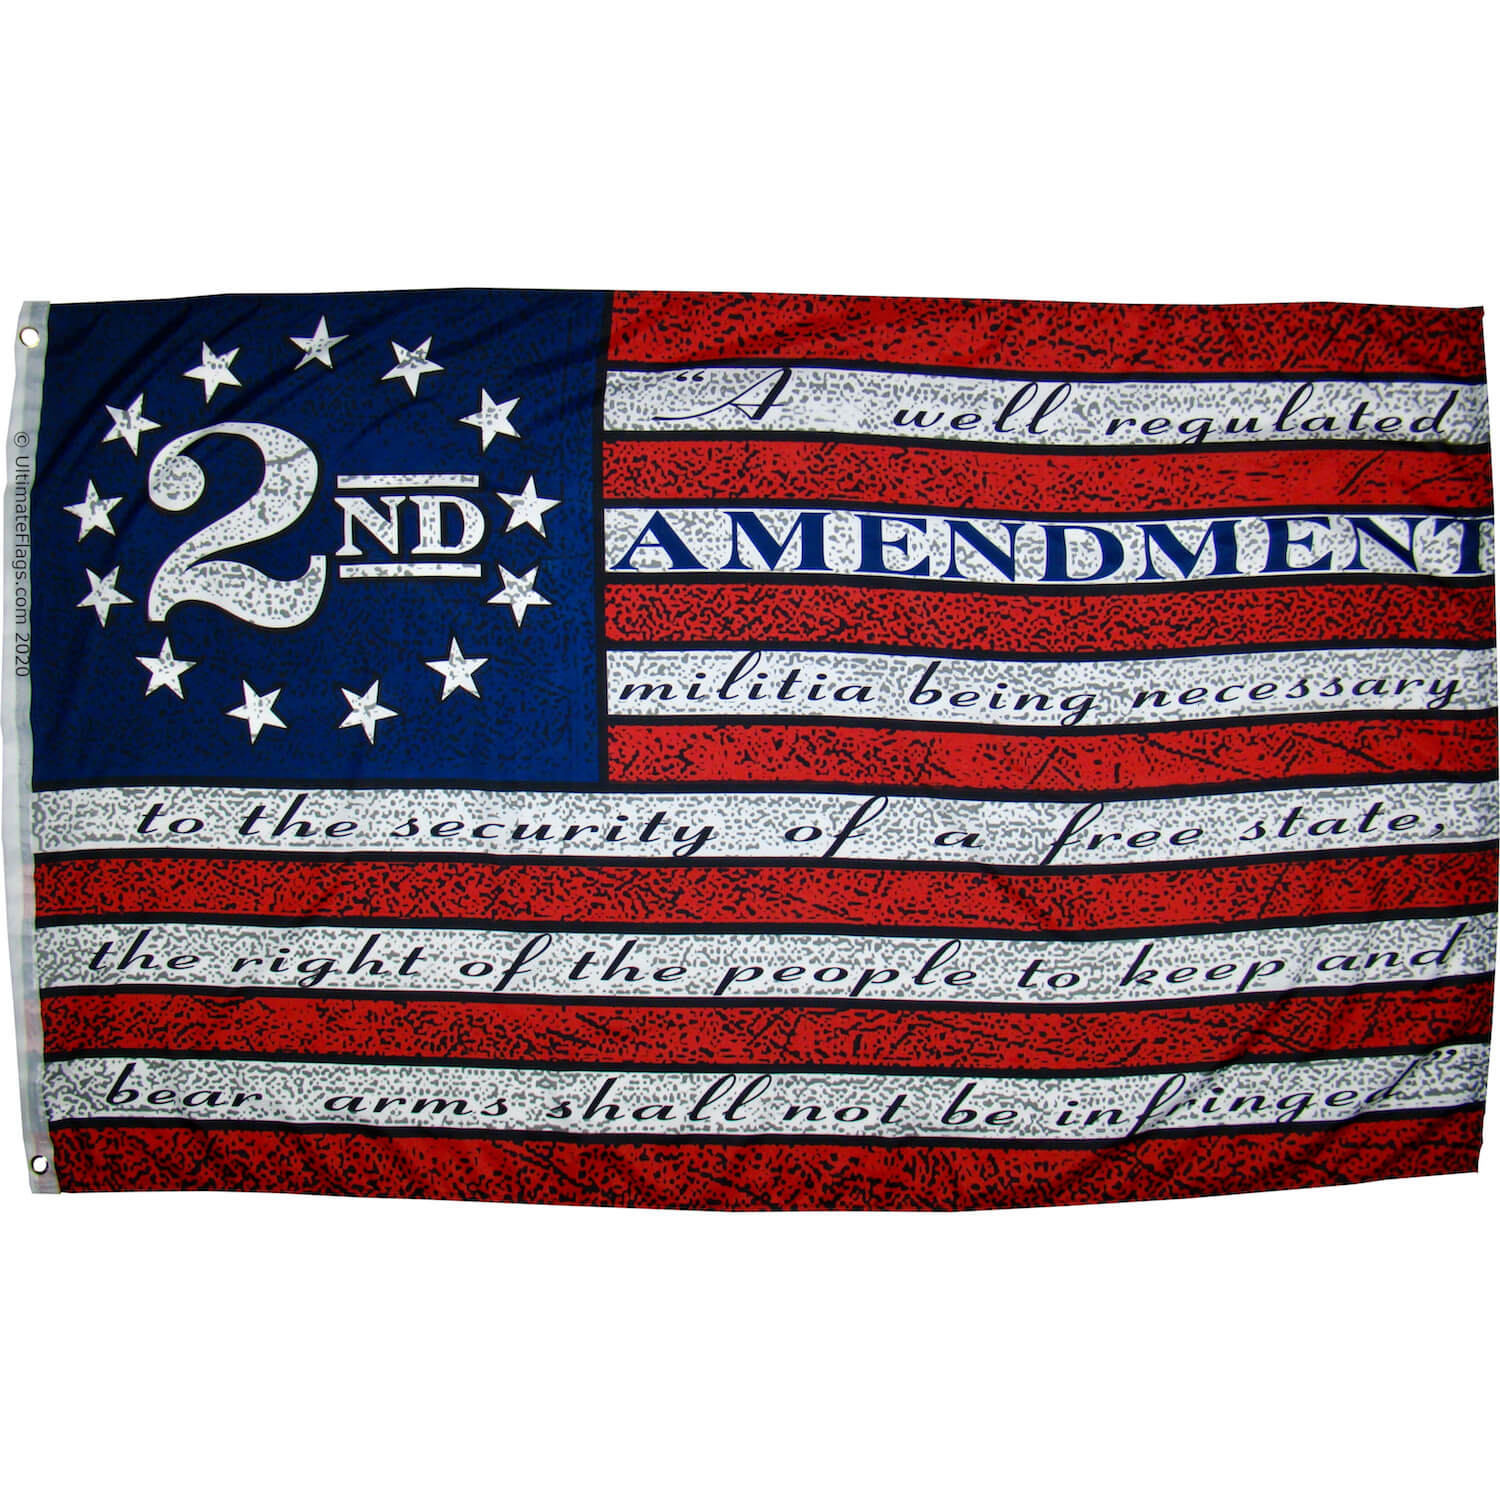 2nd Amendment Betsy Ross Flag